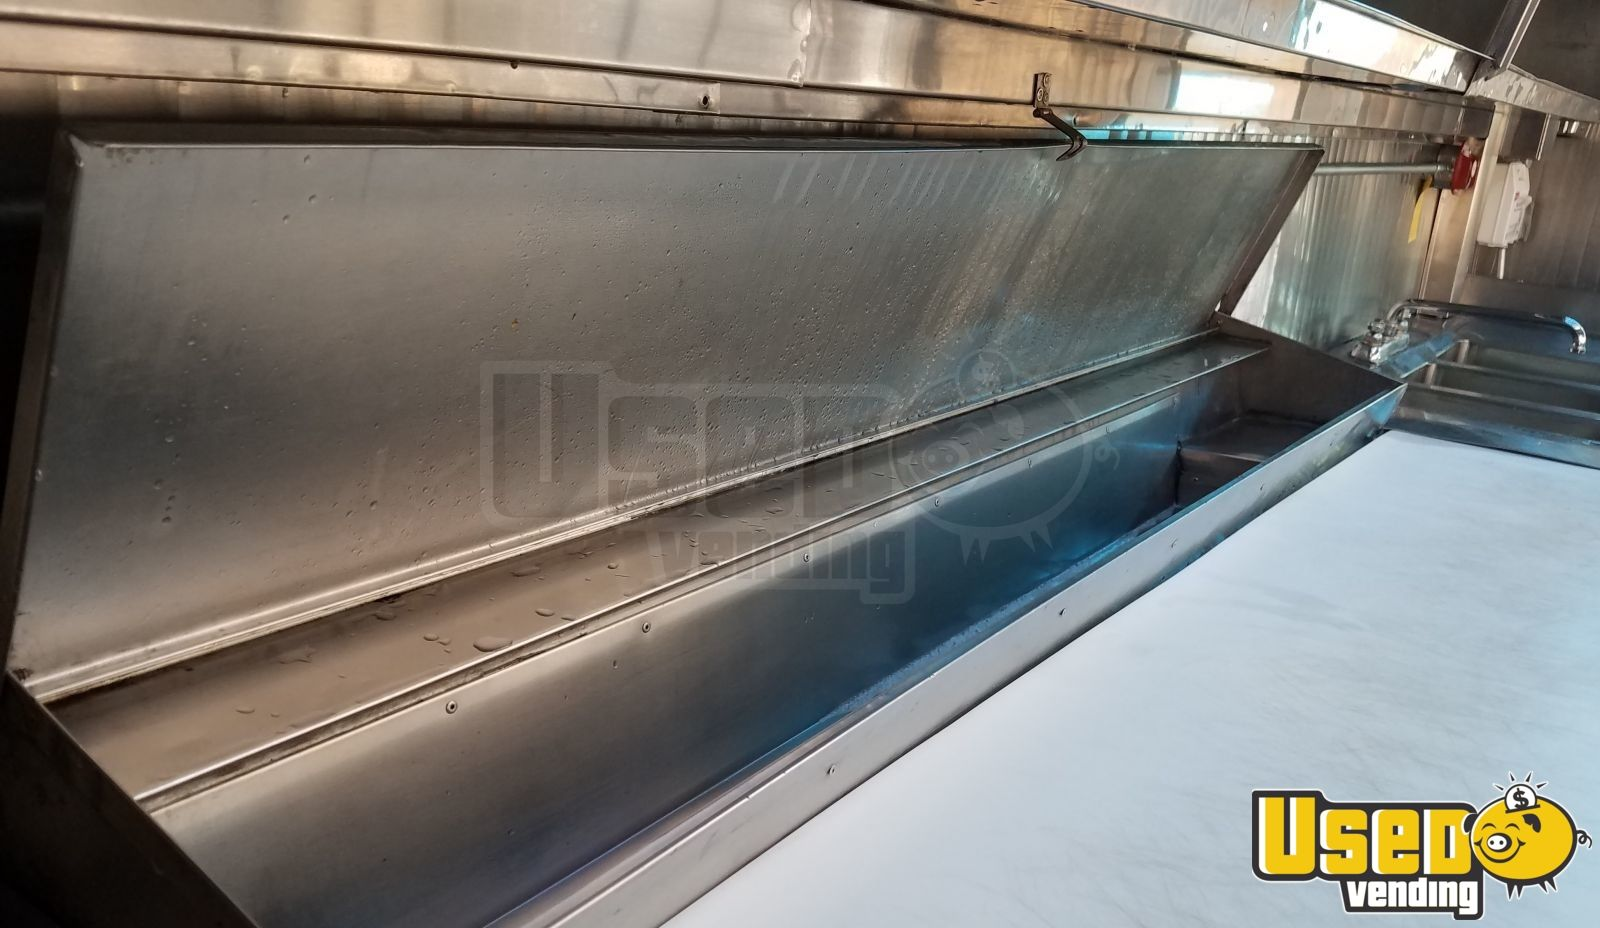 1988 Aa Cater Truck All-purpose Food Truck Exhaust Hood Utah Gas Engine for Sale - 14